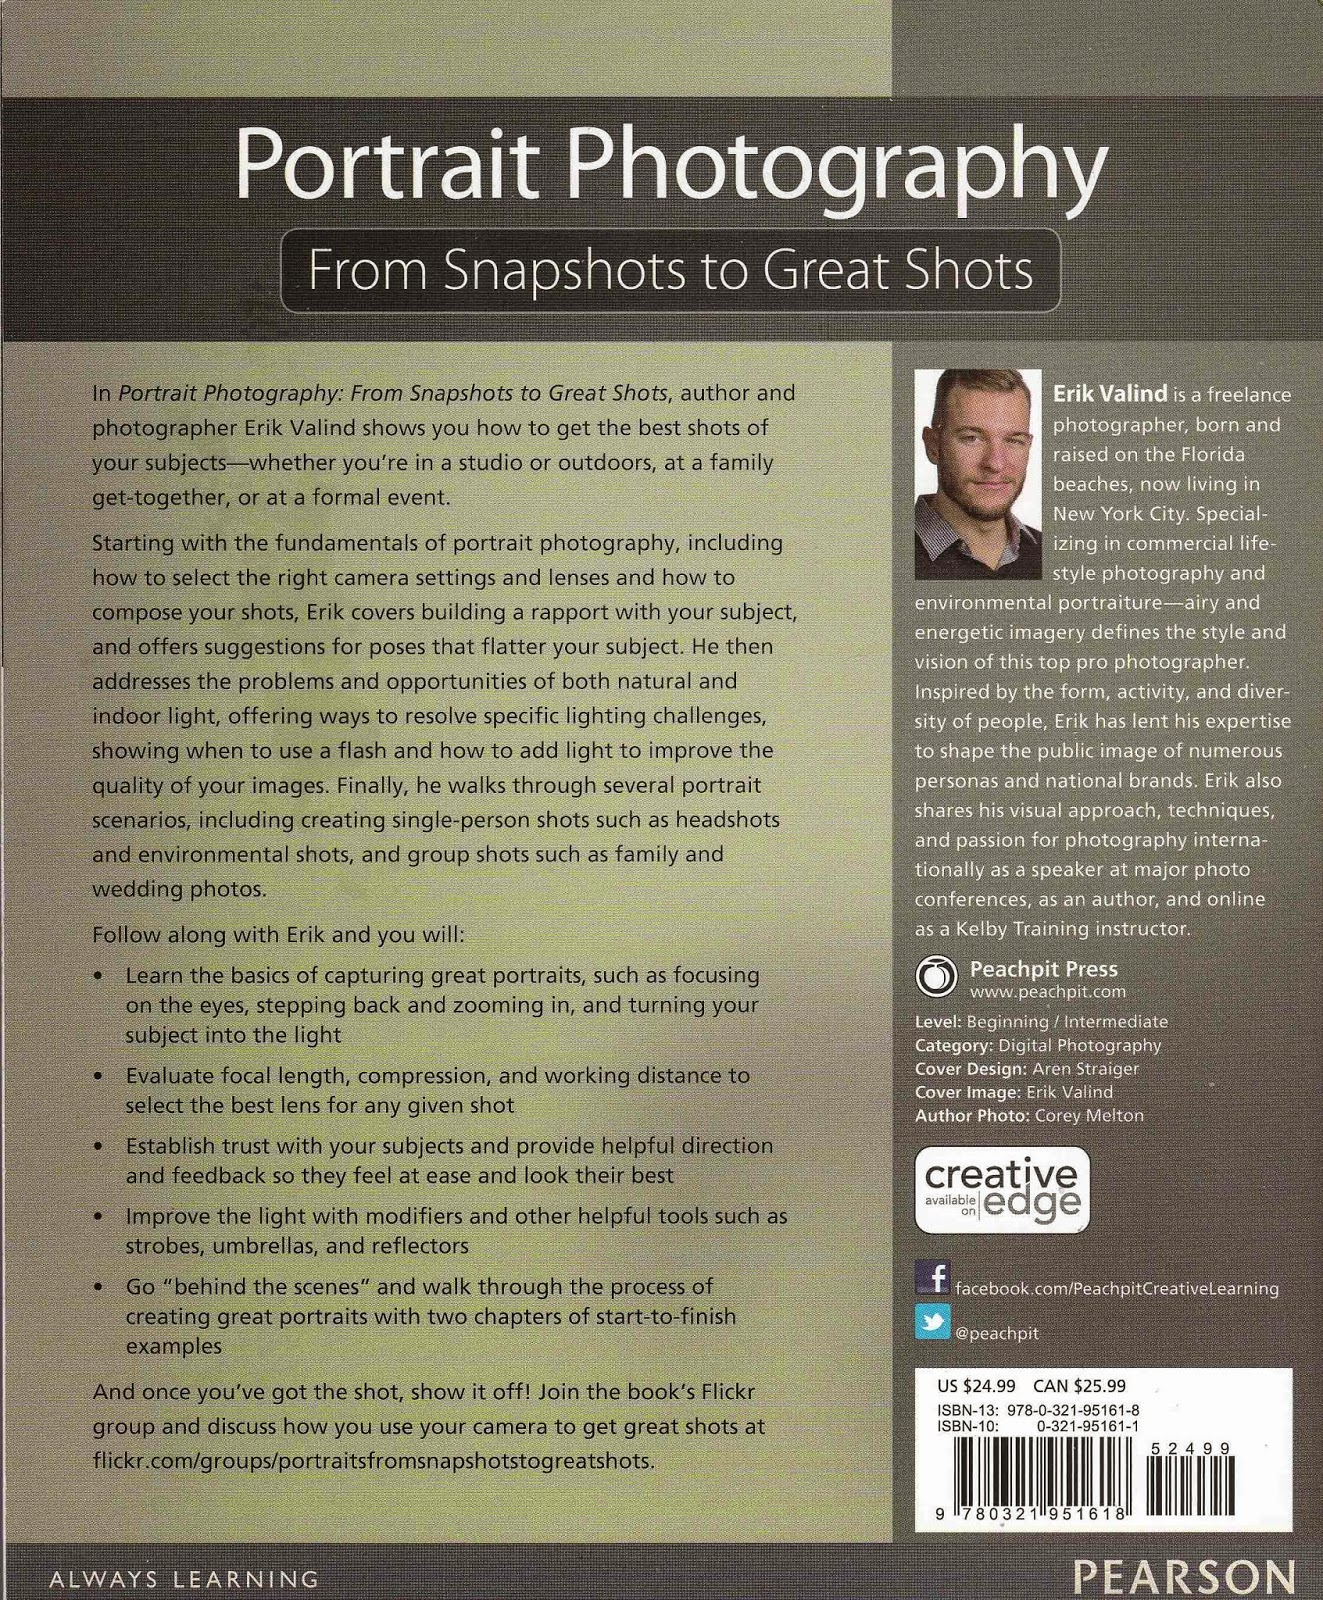 Photography Book Recommendation: Portrait Photography 'From Snapshots to Great Shots'